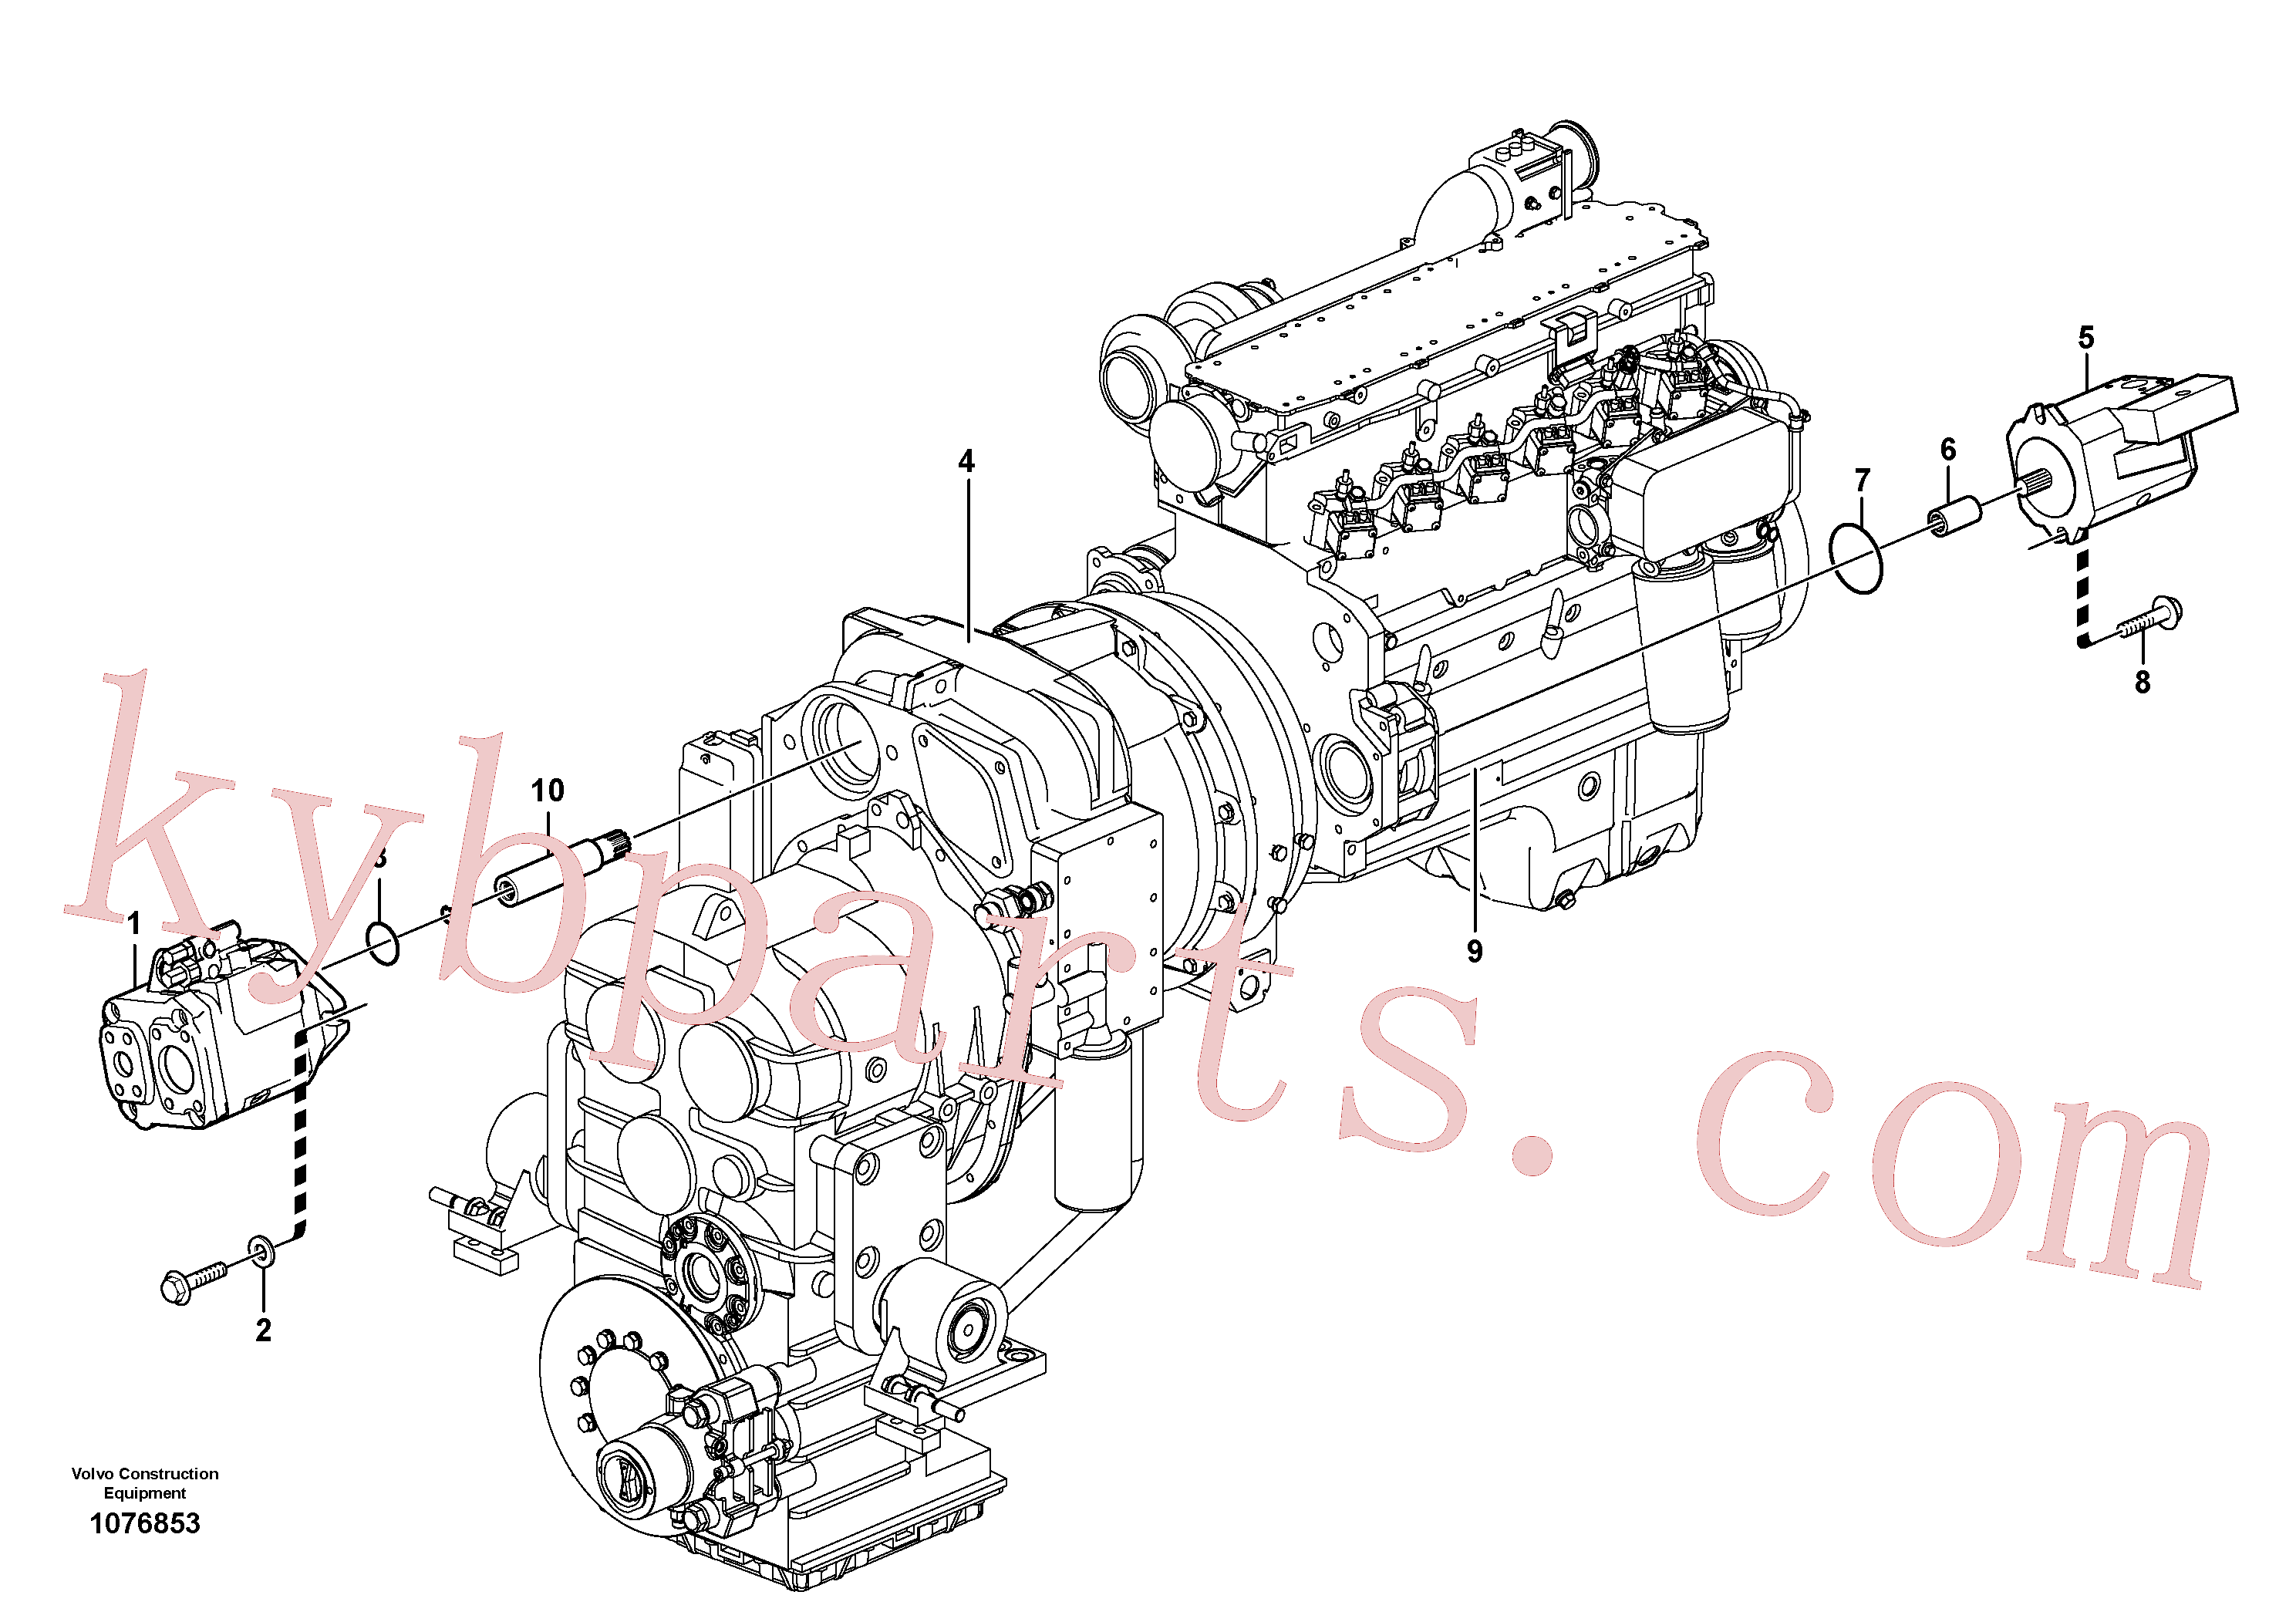 ZM2900652 for Volvo Hydraulic pump with fitting parts(1076853 assembly)